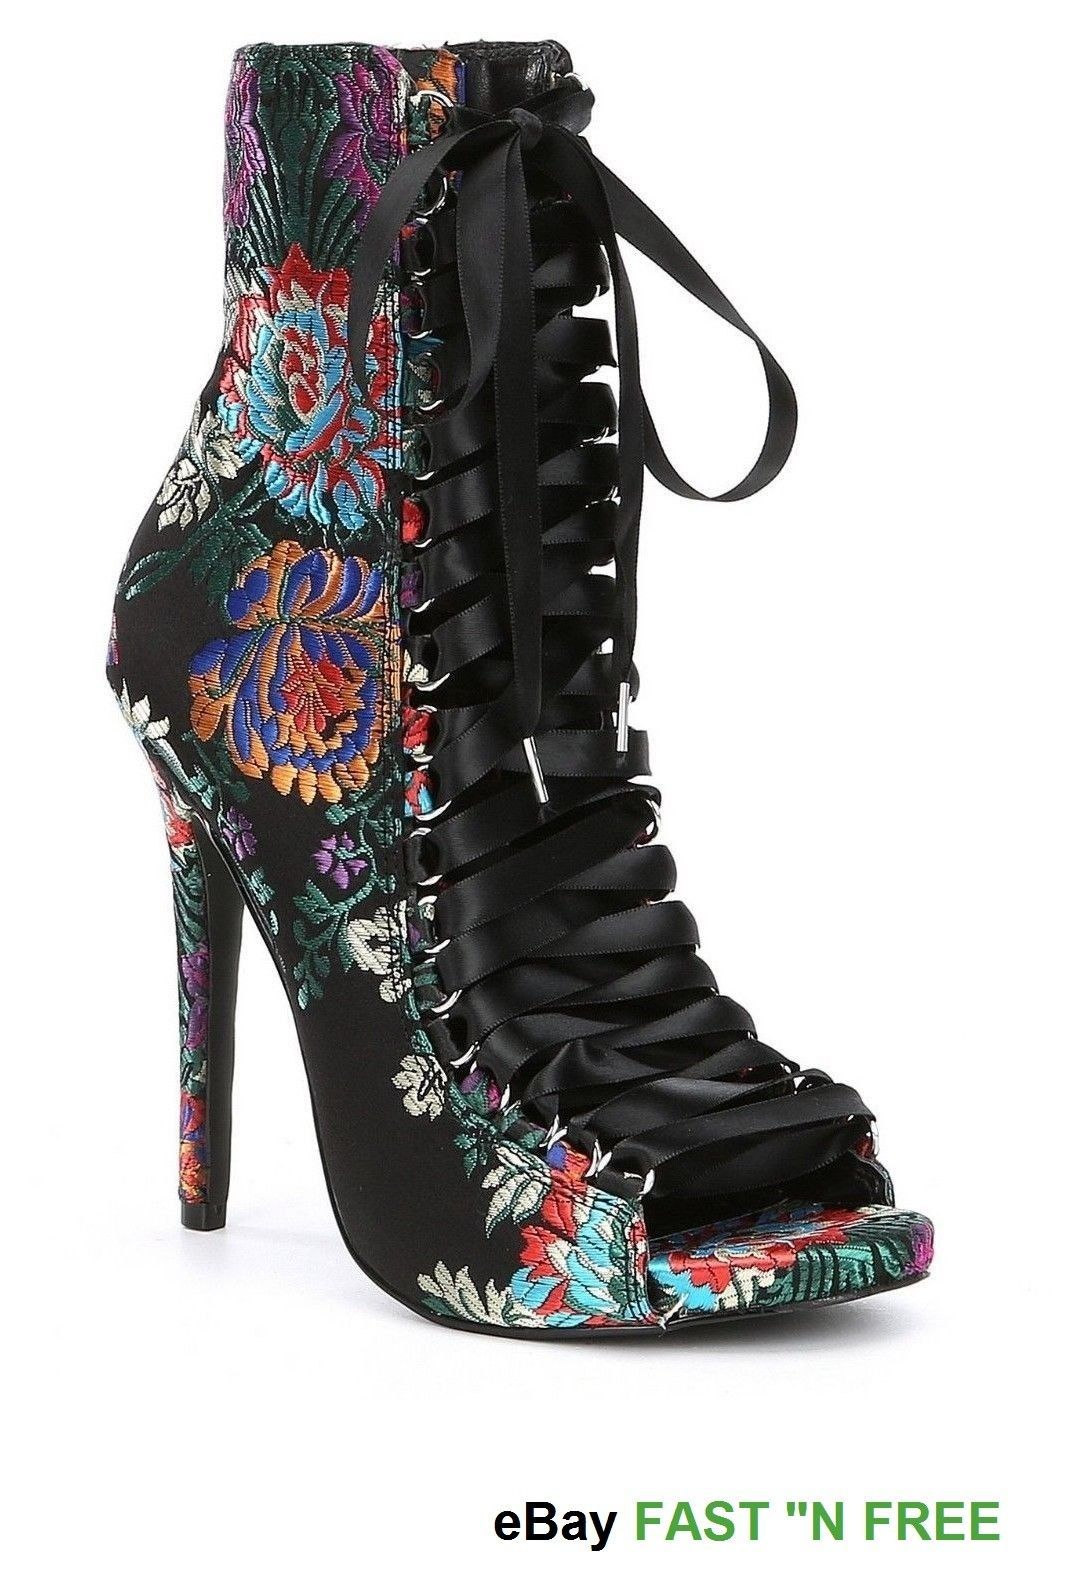 cb62fd1c6b80 Steve Madden Fuego Lace up Peep Toe Booties Black Multi Red Floral Brocade  NWT